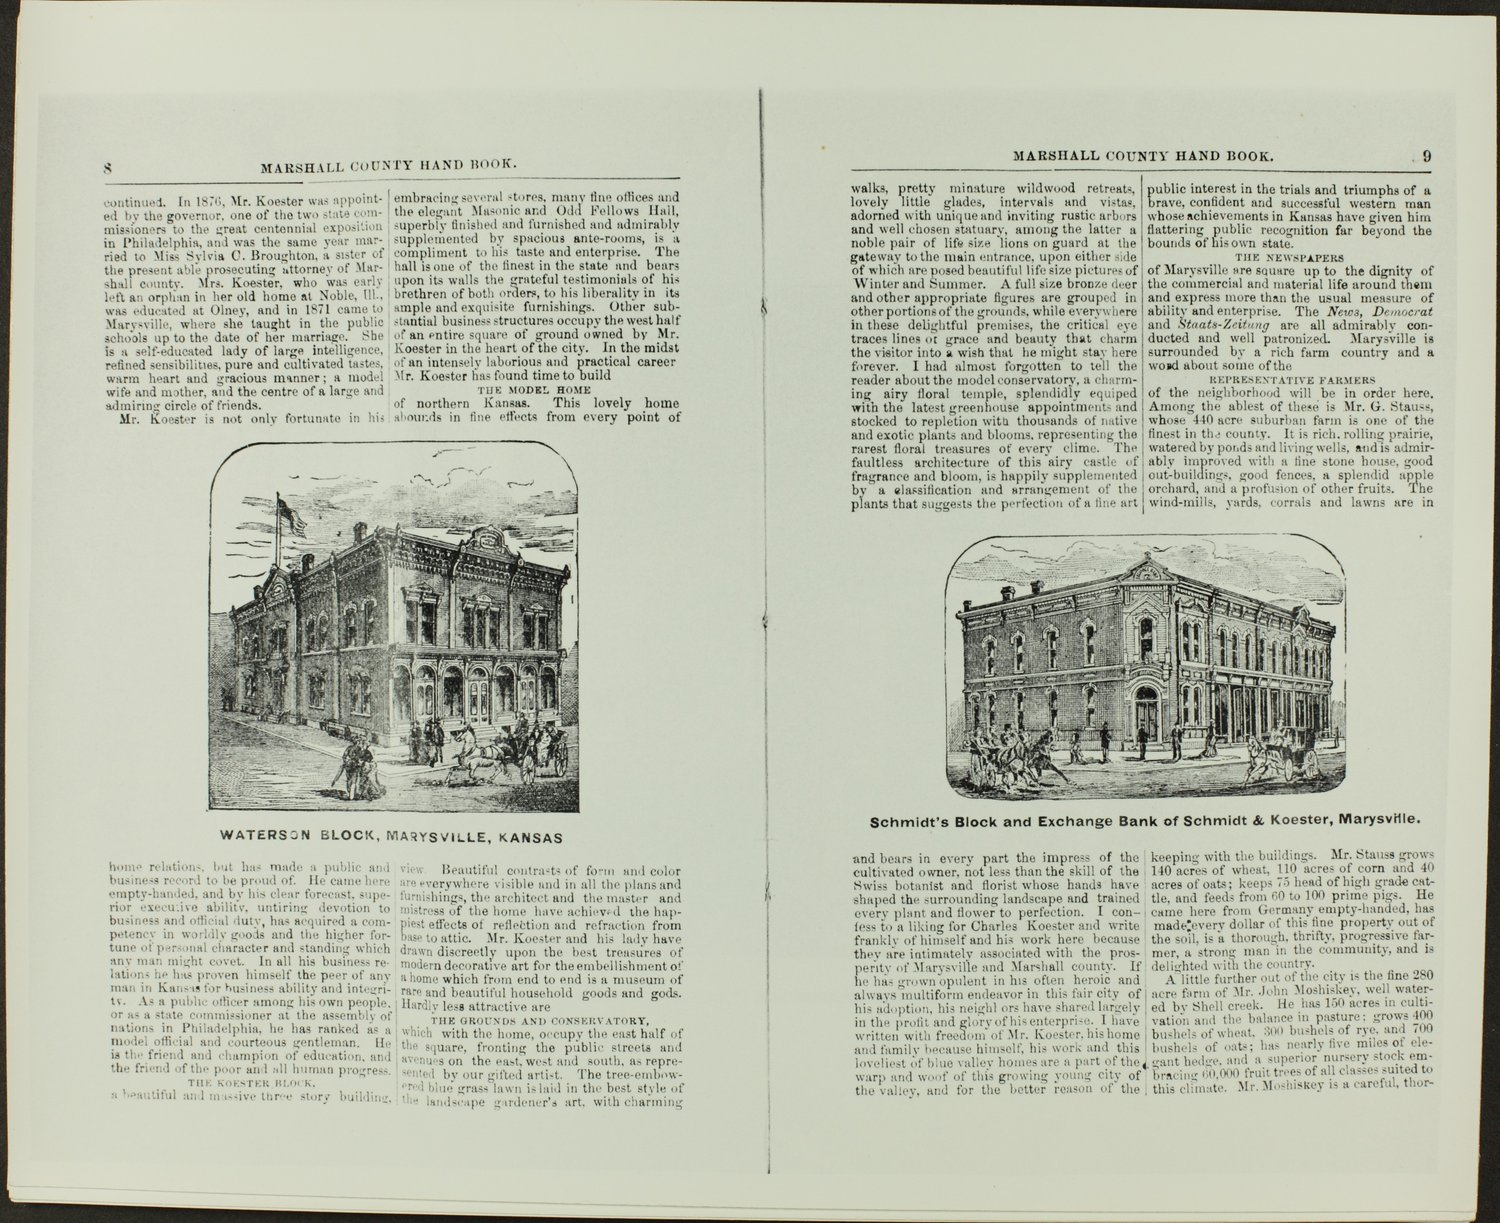 Handbook of Marshall County, Kansas - Pages 8 & 9